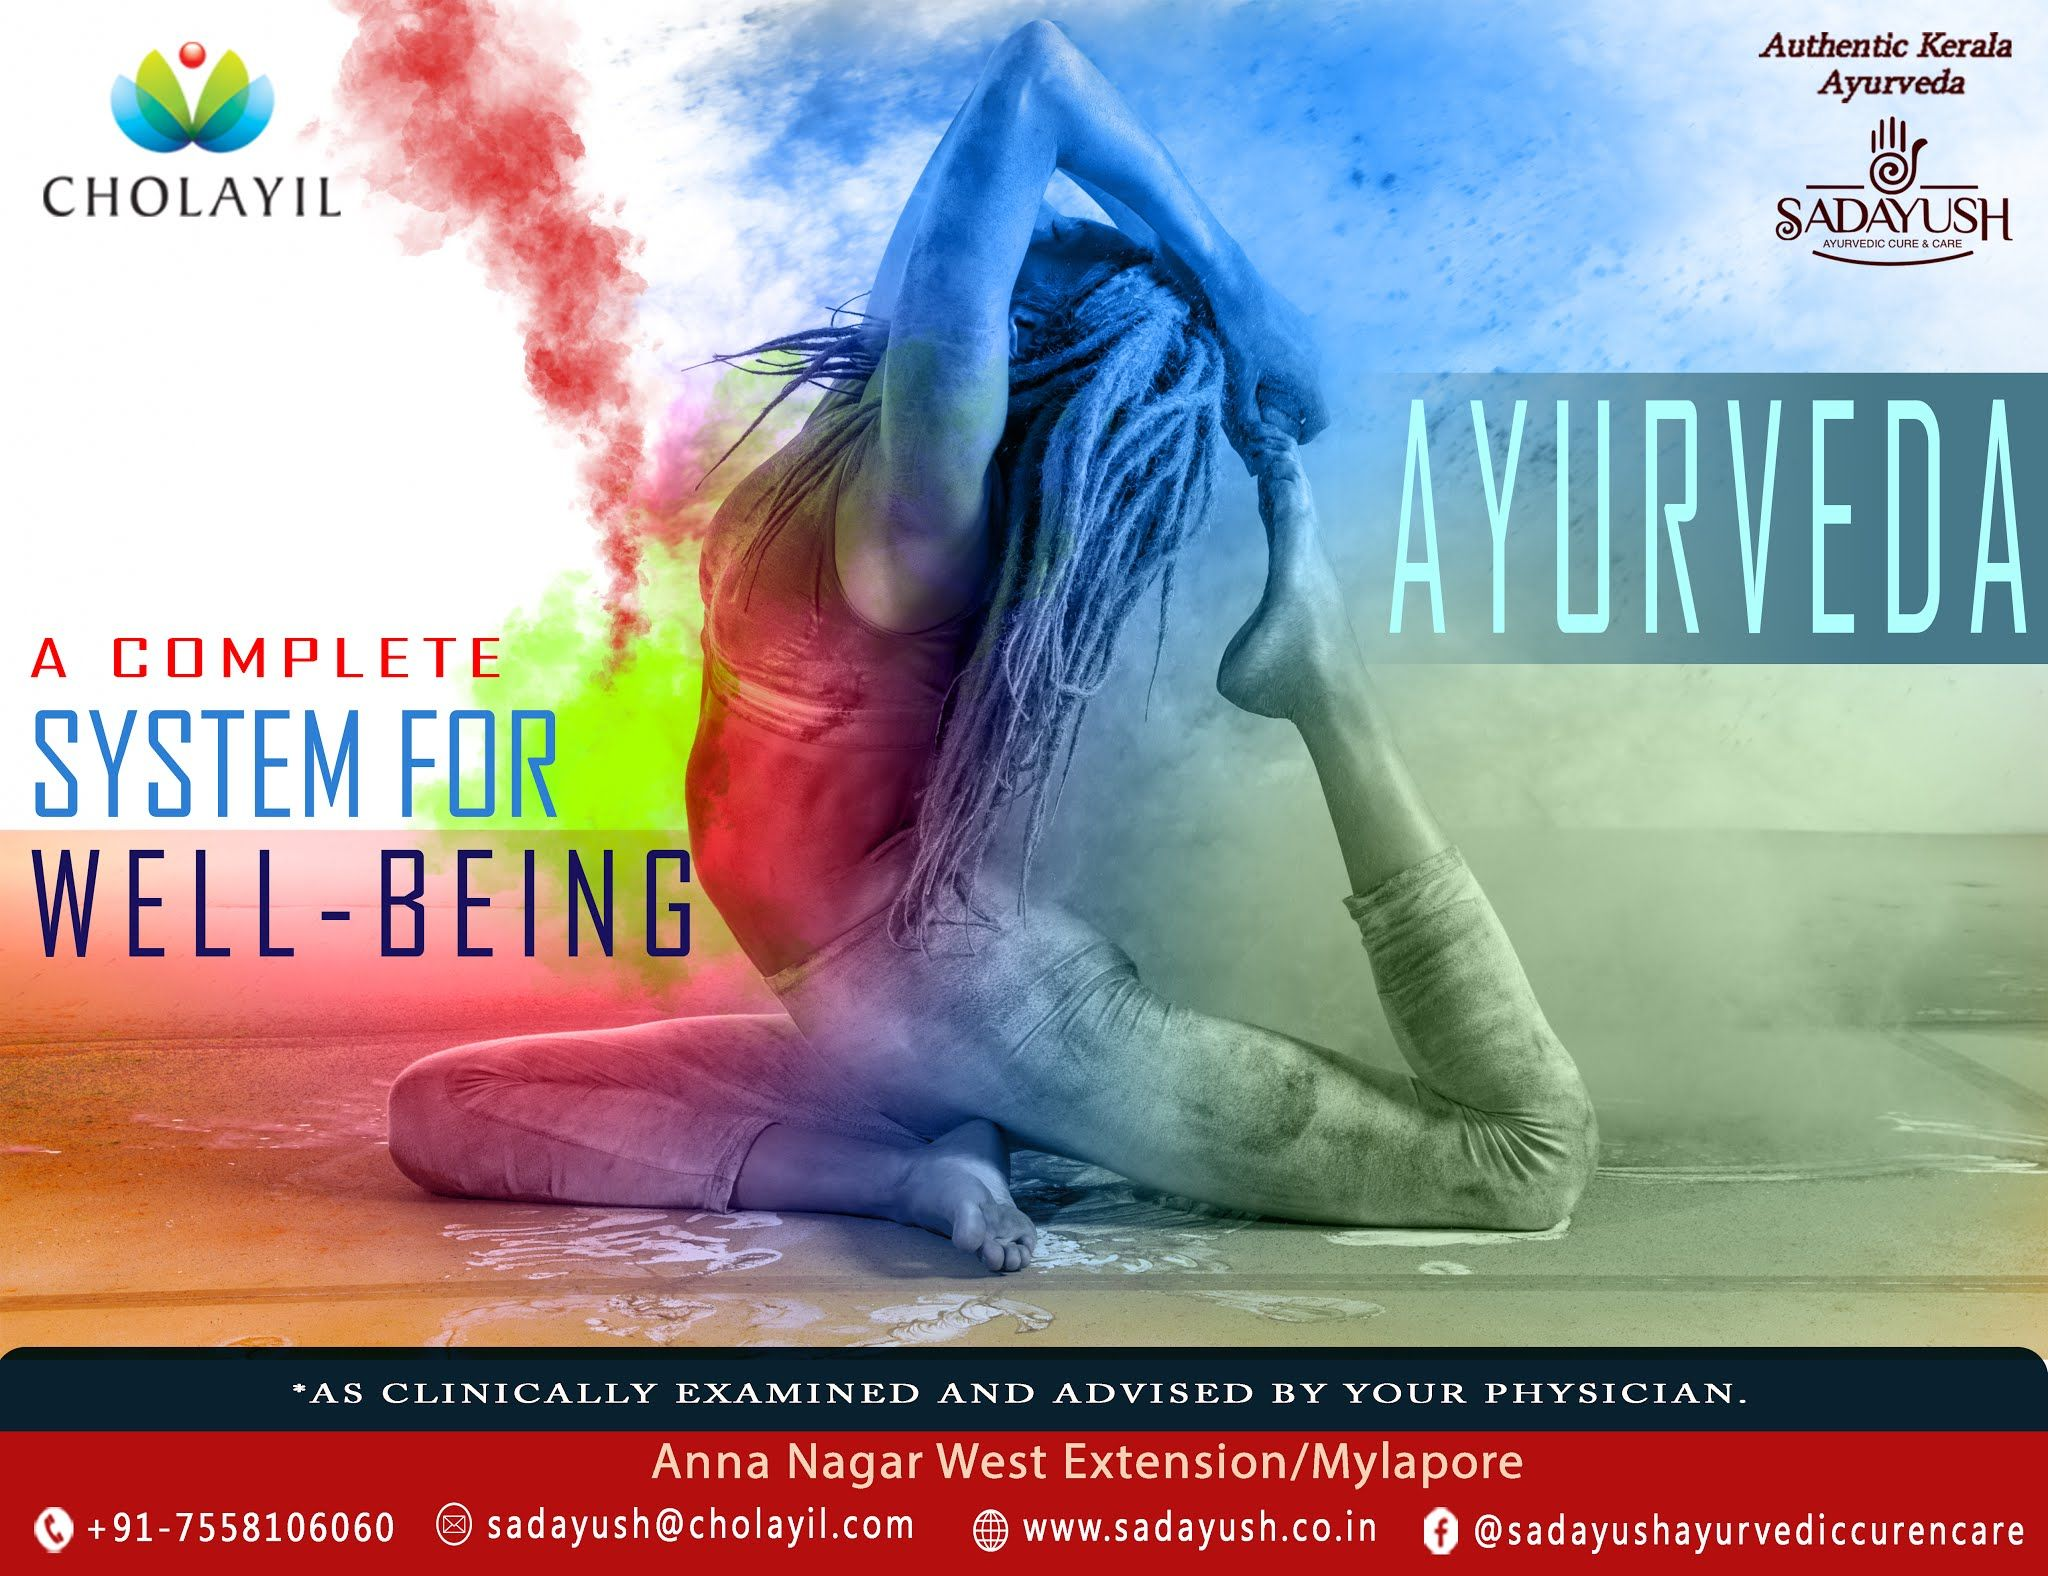 Ayurveda: A complete system for well-being  Sadayush